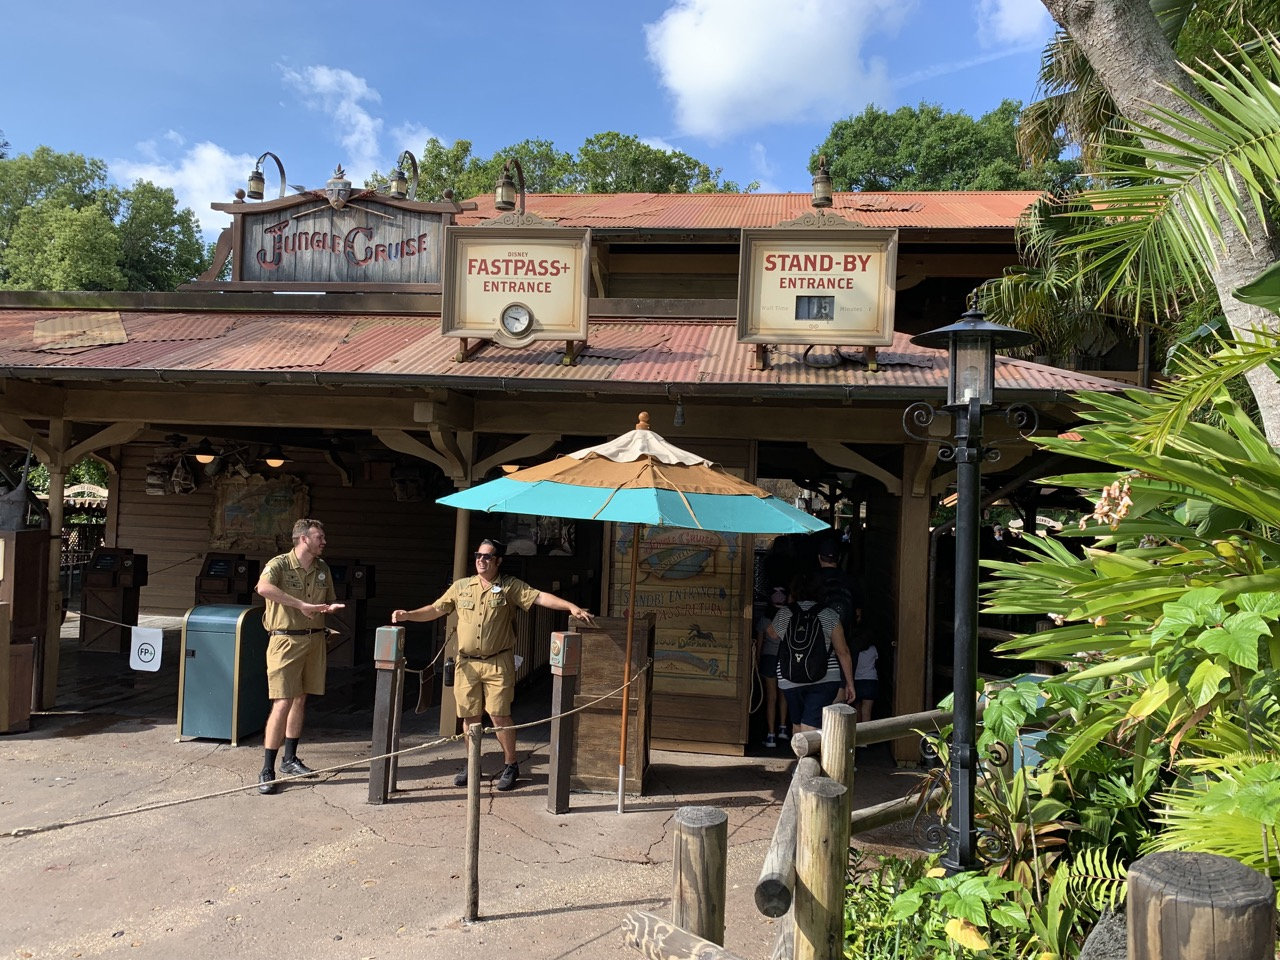 disney world trip report early summer 2019 day five 33 jungle cruise.jpeg